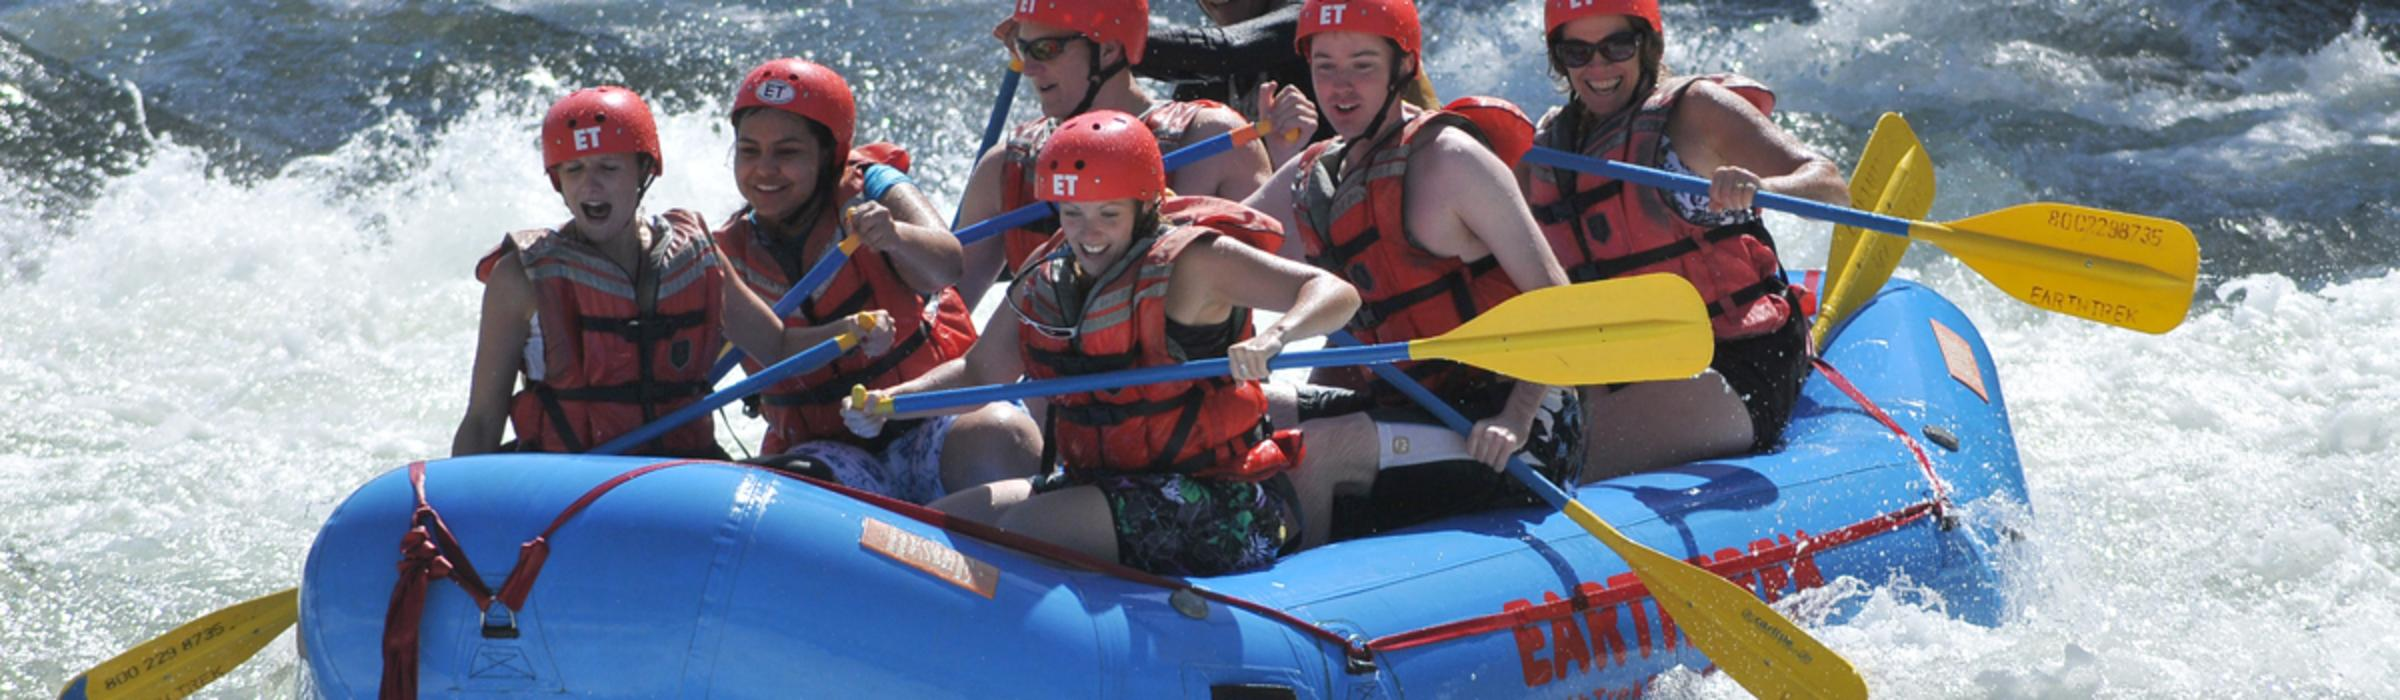 Rafting on the American River with Earthtrek Expeditions